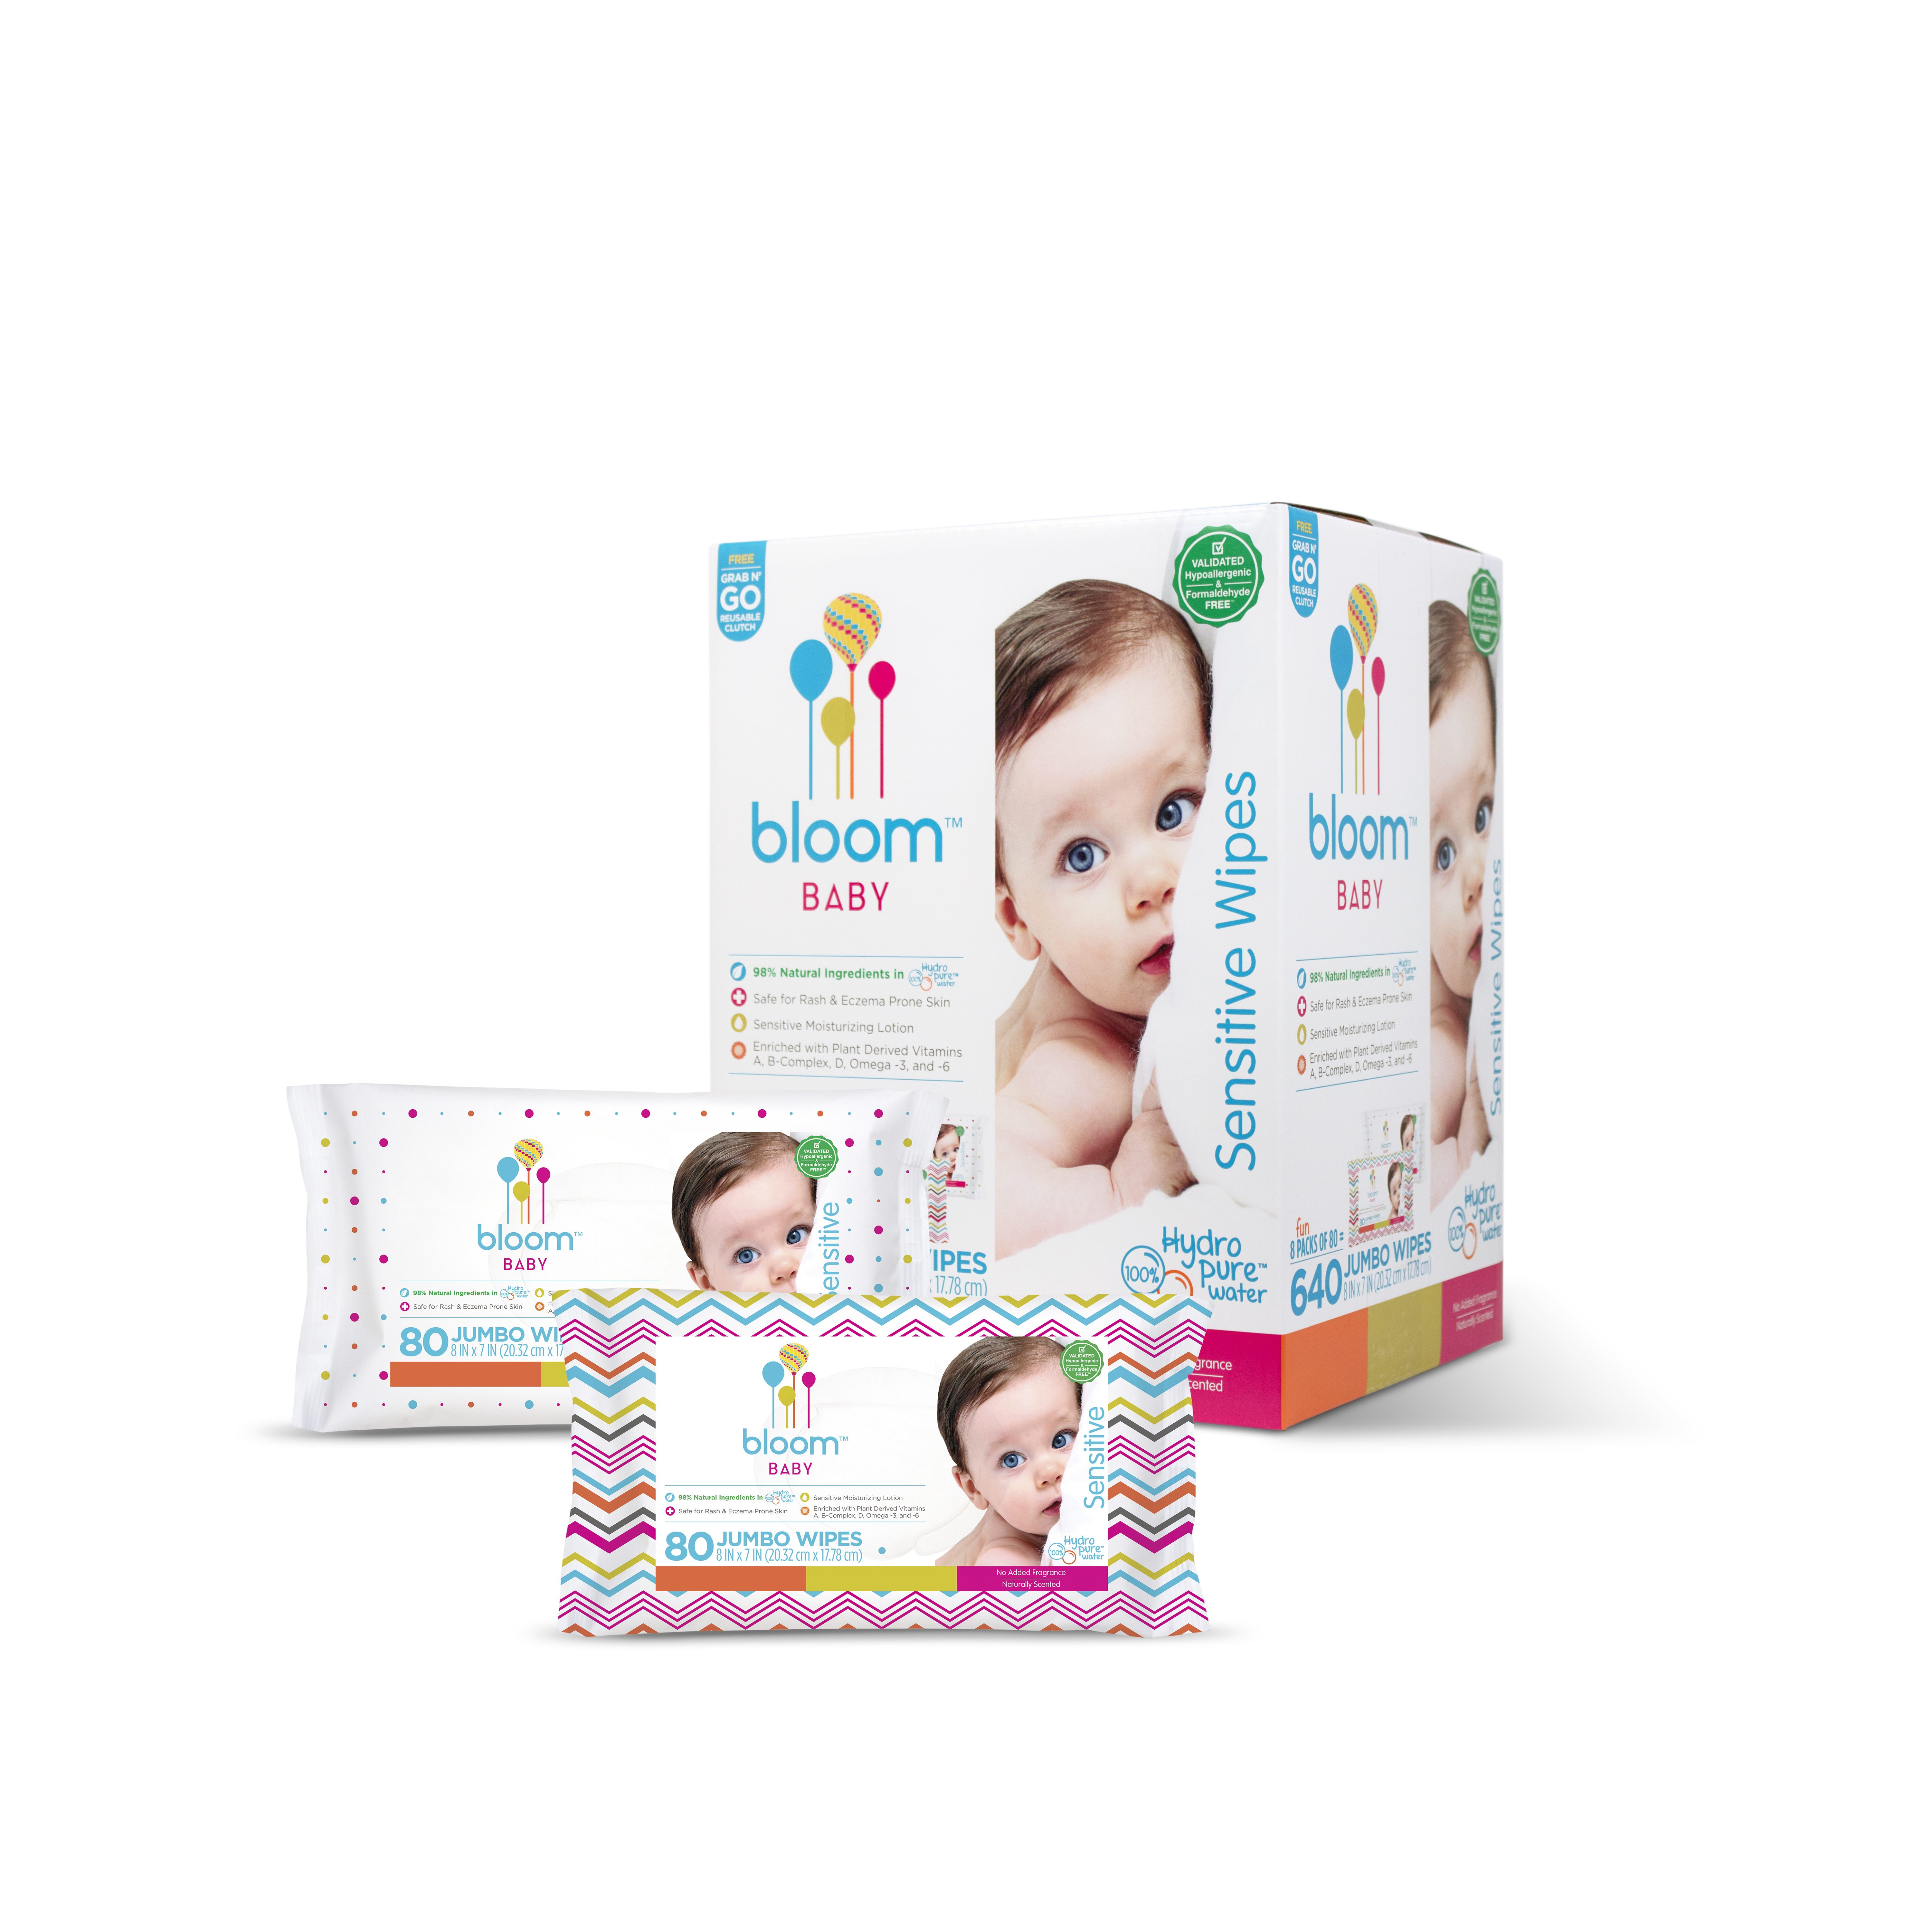 have a baby bloom baby wipes are a mustbuy -